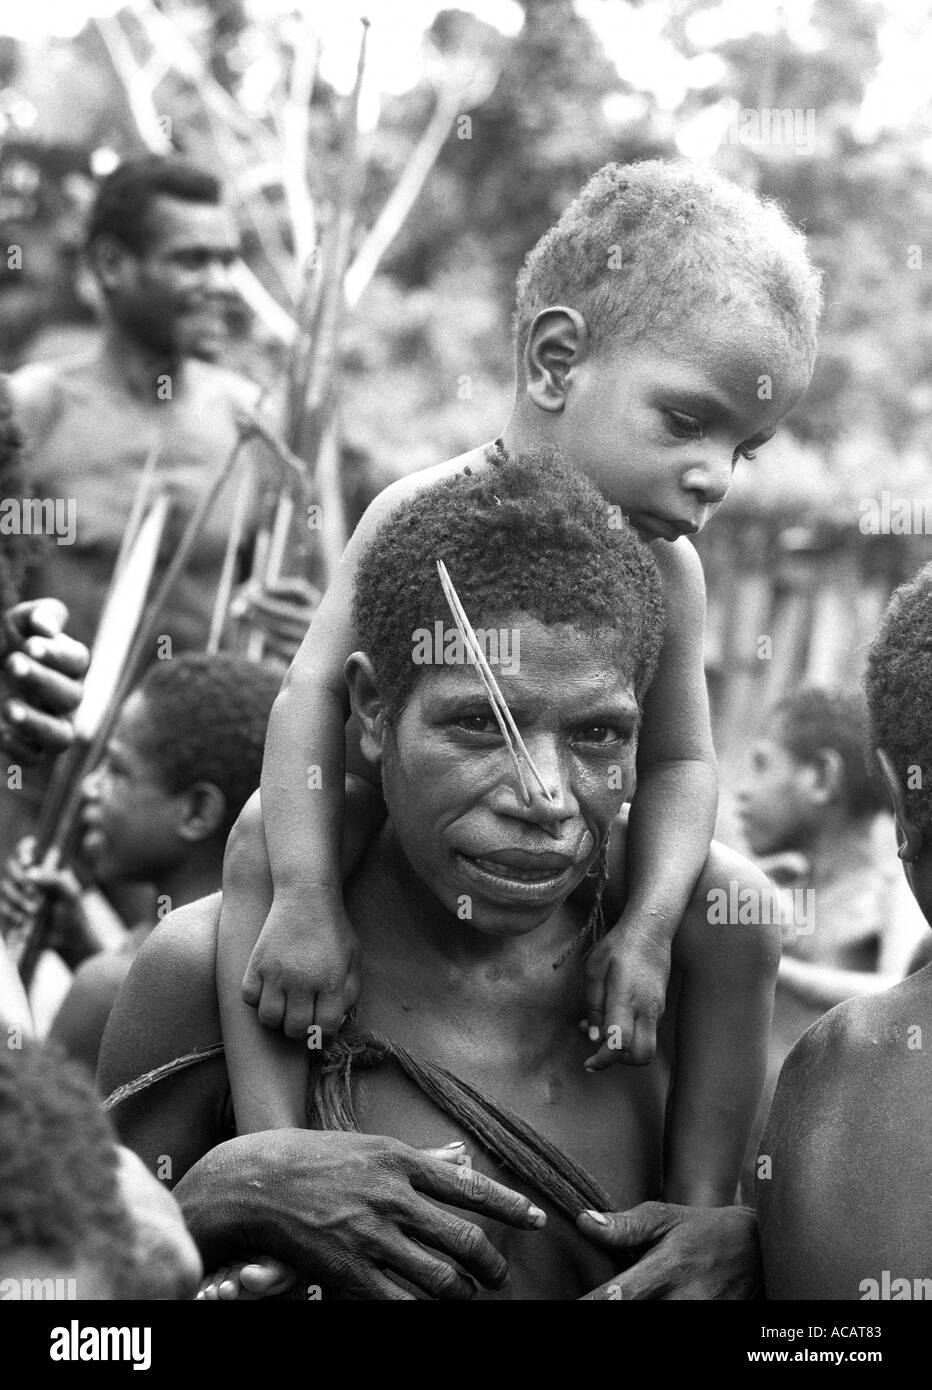 Primitive villagers in then unmapped Irian Jaya (1980), Western New Guinea, Indonesia. - Stock Image